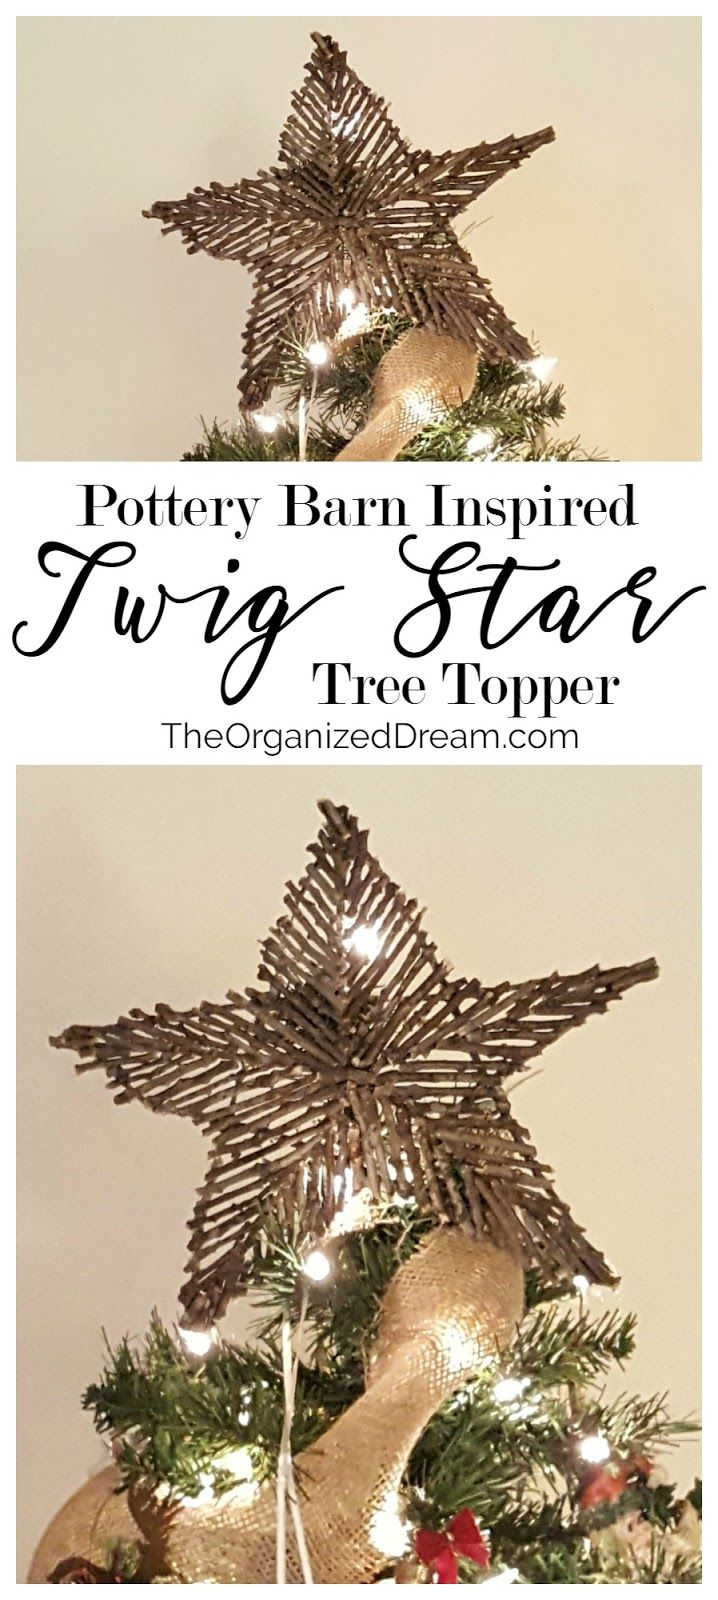 Create Your Own Pottery Barn Inspired Twig Tree Topper With